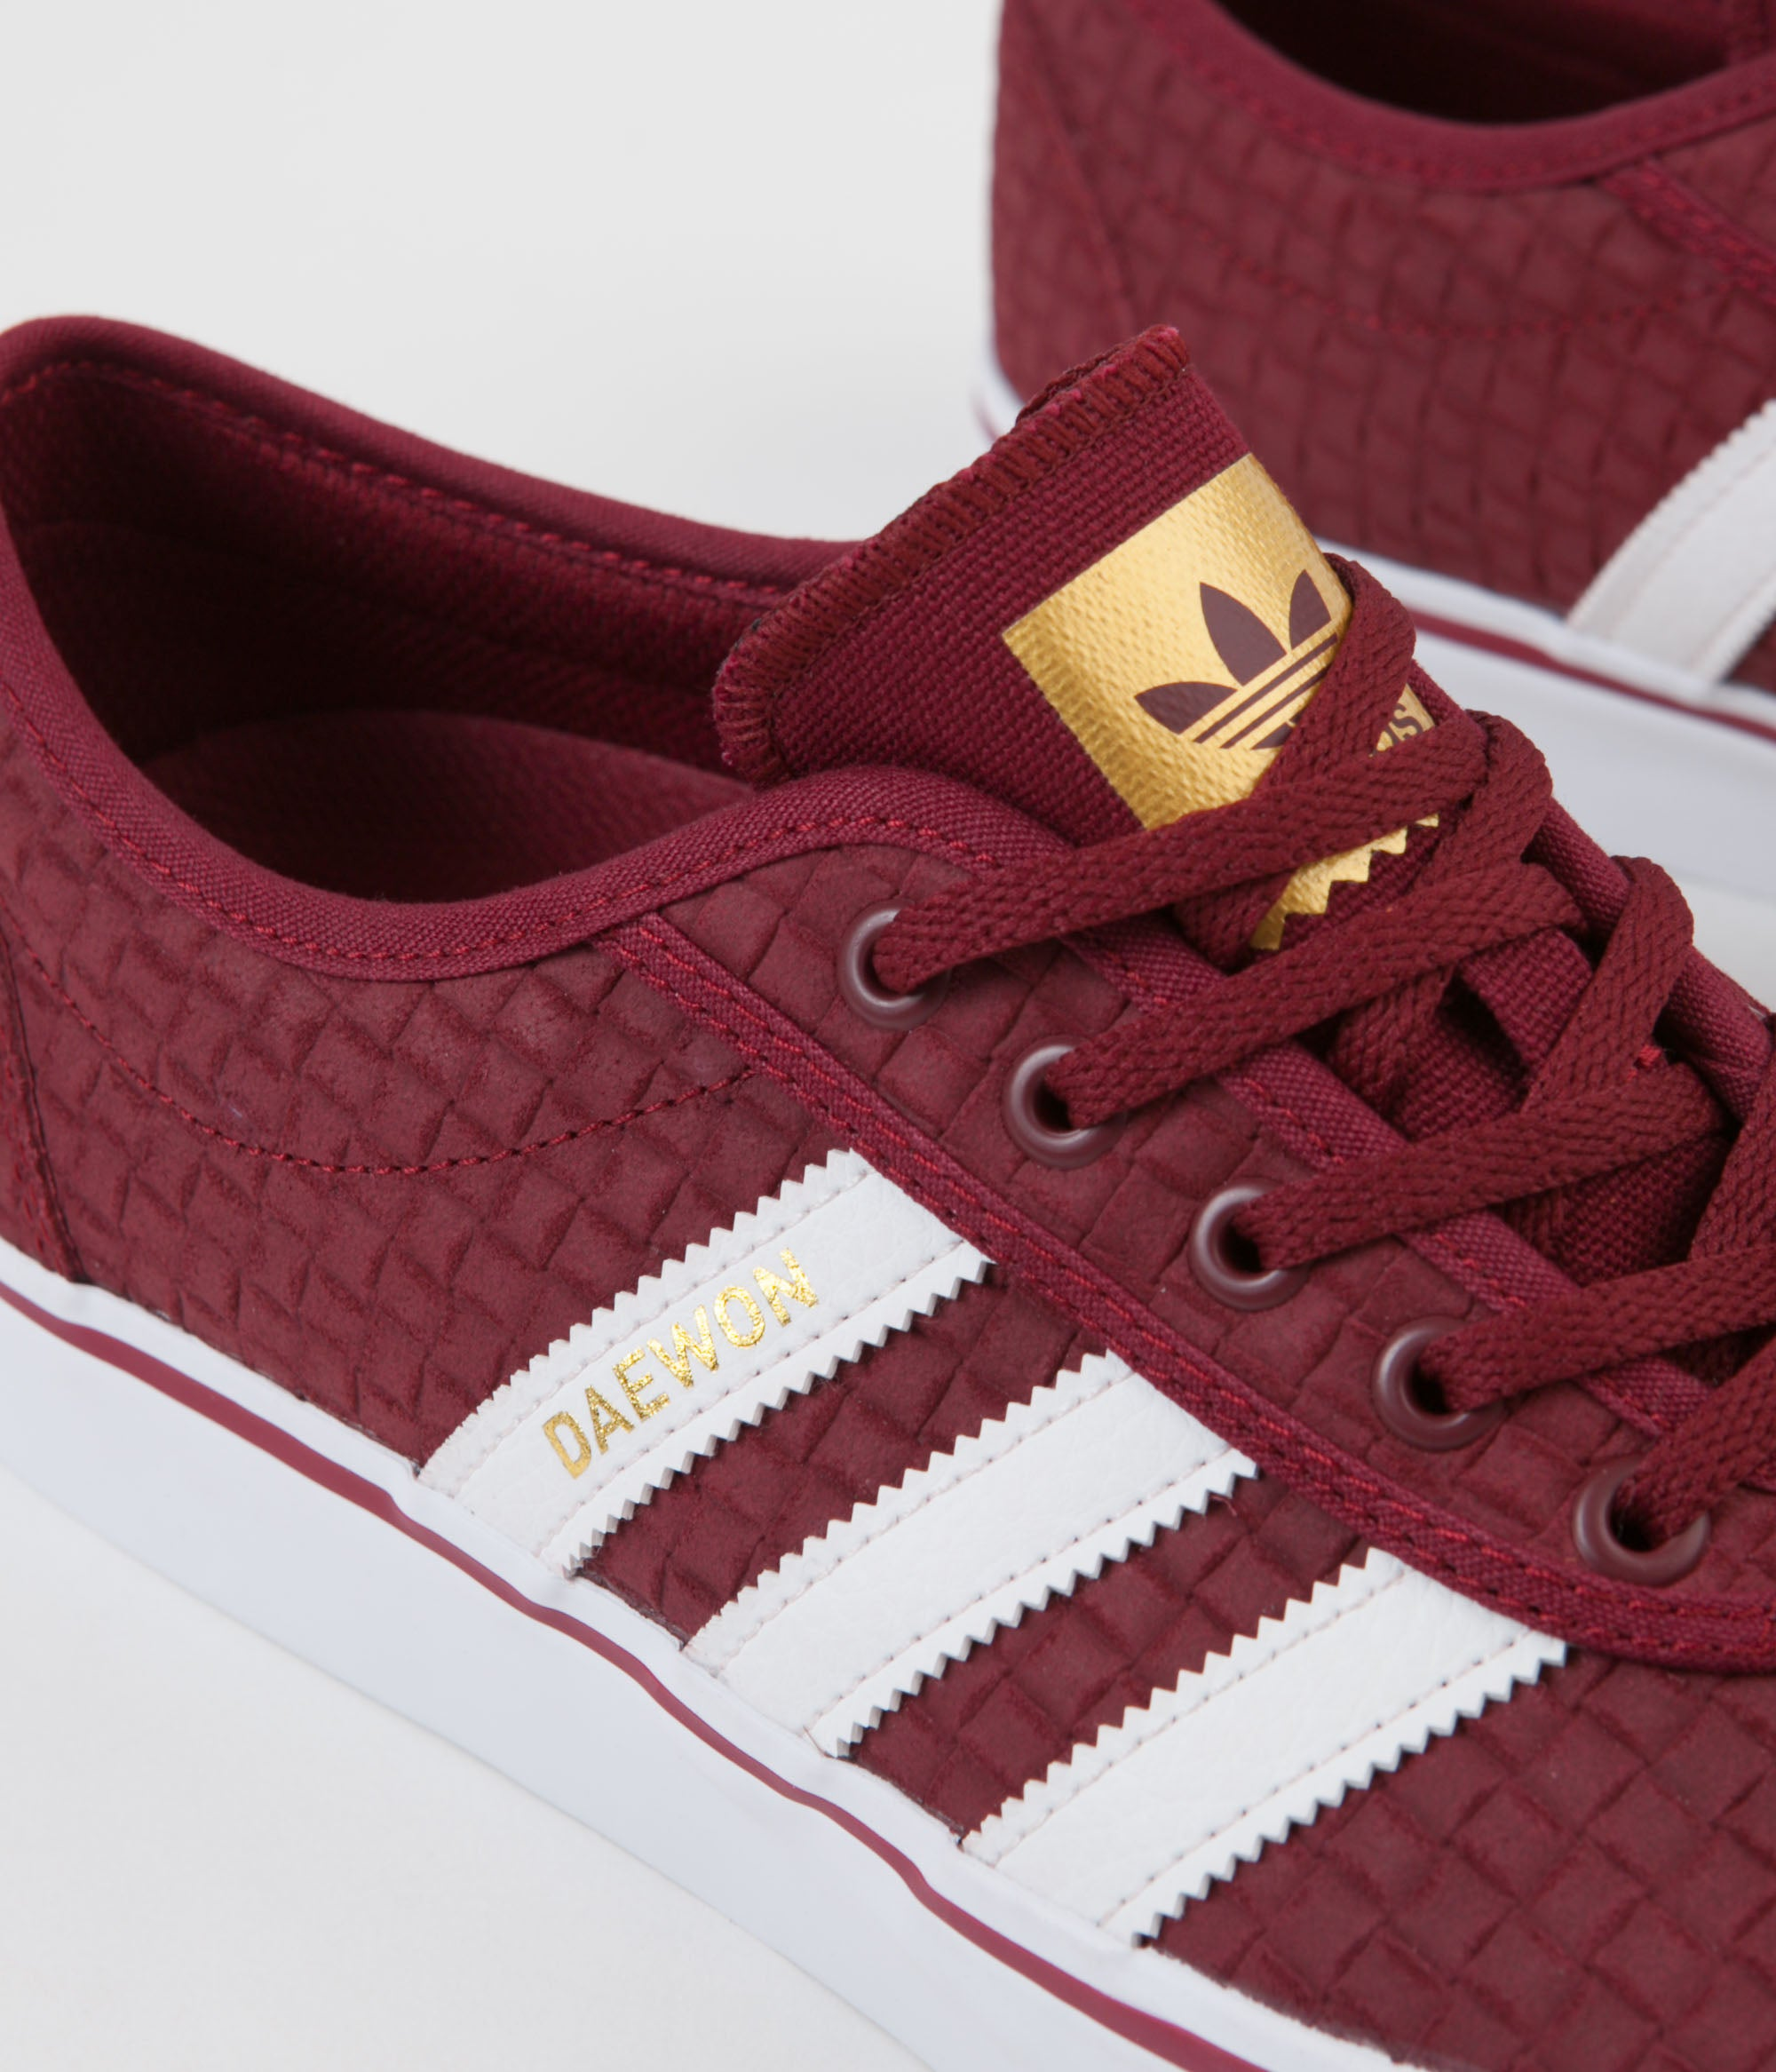 newest 6064a 69a41 ... Adidas x Daewon Adi-Ease Shoes - Collegiate Burgundy  White  Gold  Metallic ...